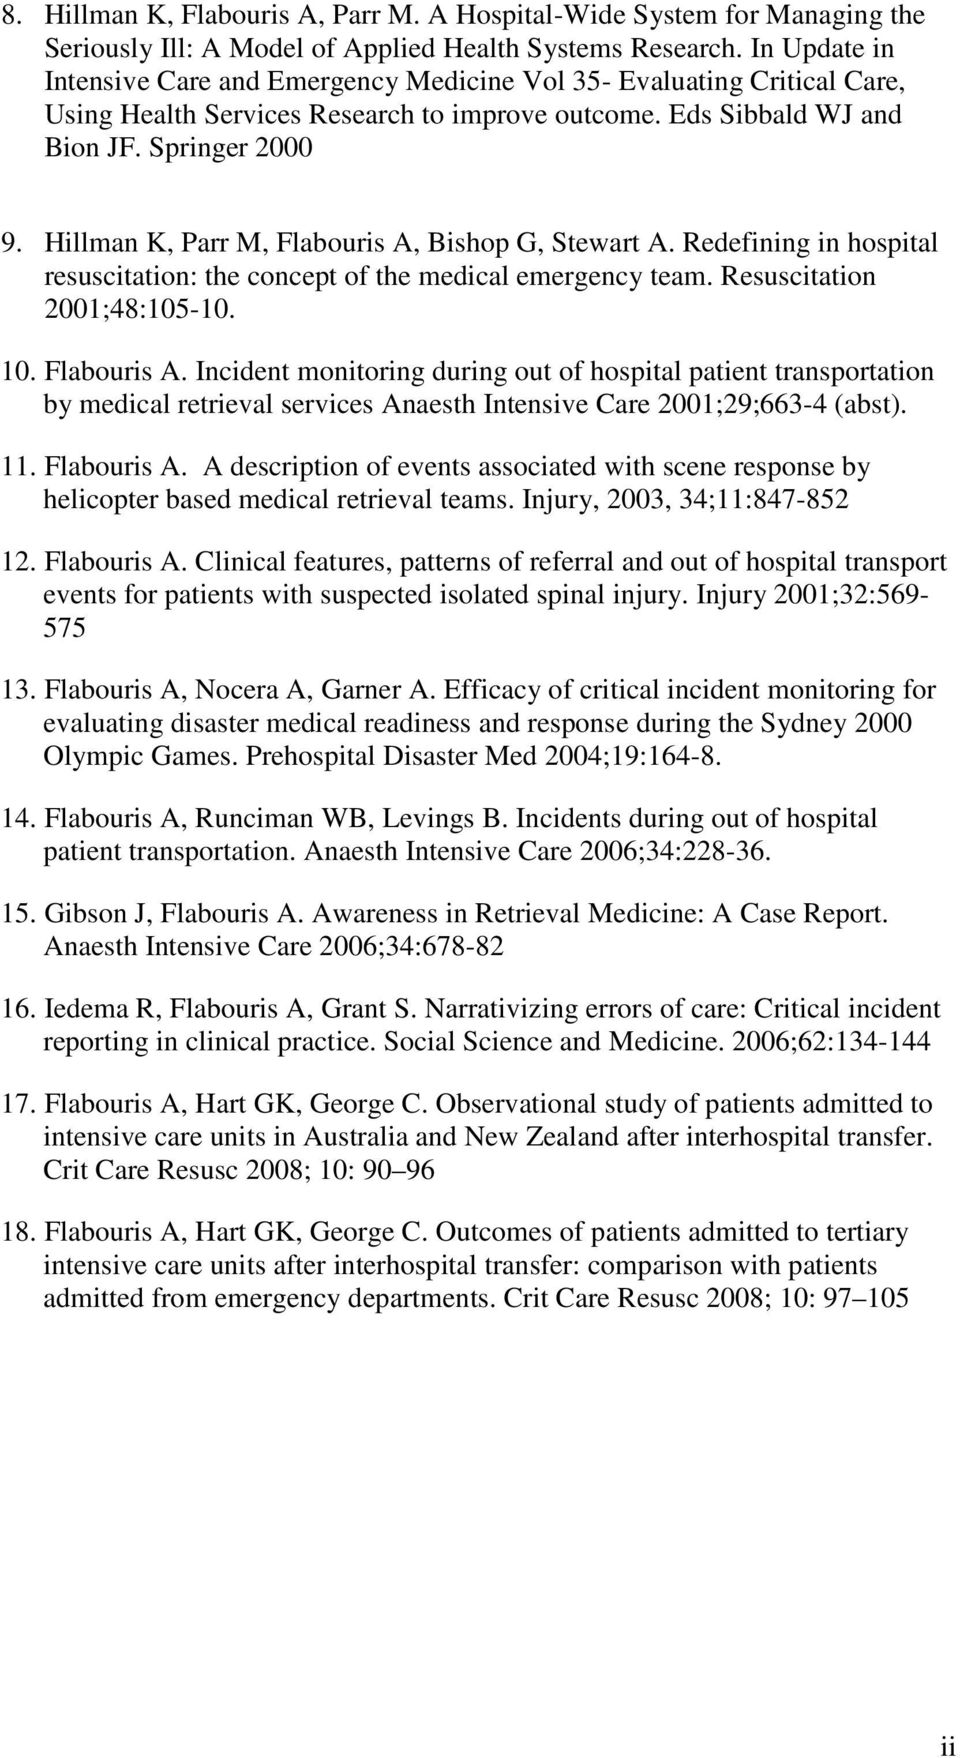 Hillman K, Parr M, Flabouris A, Bishop G, Stewart A. Redefining in hospital resuscitation: the concept of the medical emergency team. Resuscitation 2001;48:105-10. 10. Flabouris A. Incident monitoring during out of hospital patient transportation by medical retrieval services Anaesth Intensive Care 2001;29;663-4 (abst).